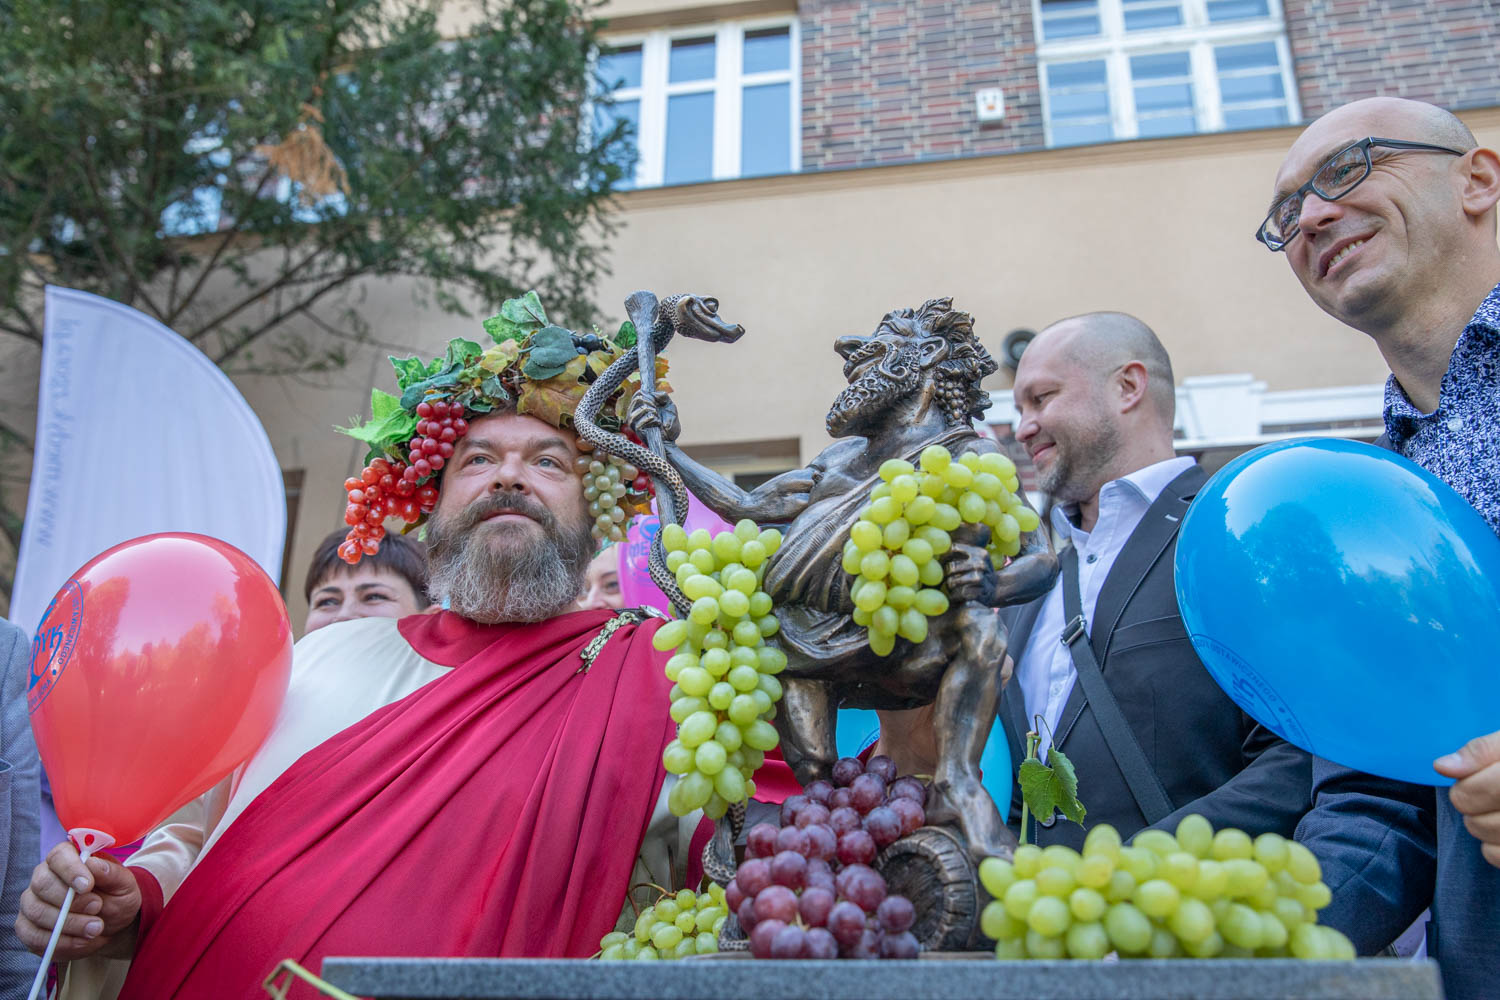 The revealing of a new Bacchus Gnome